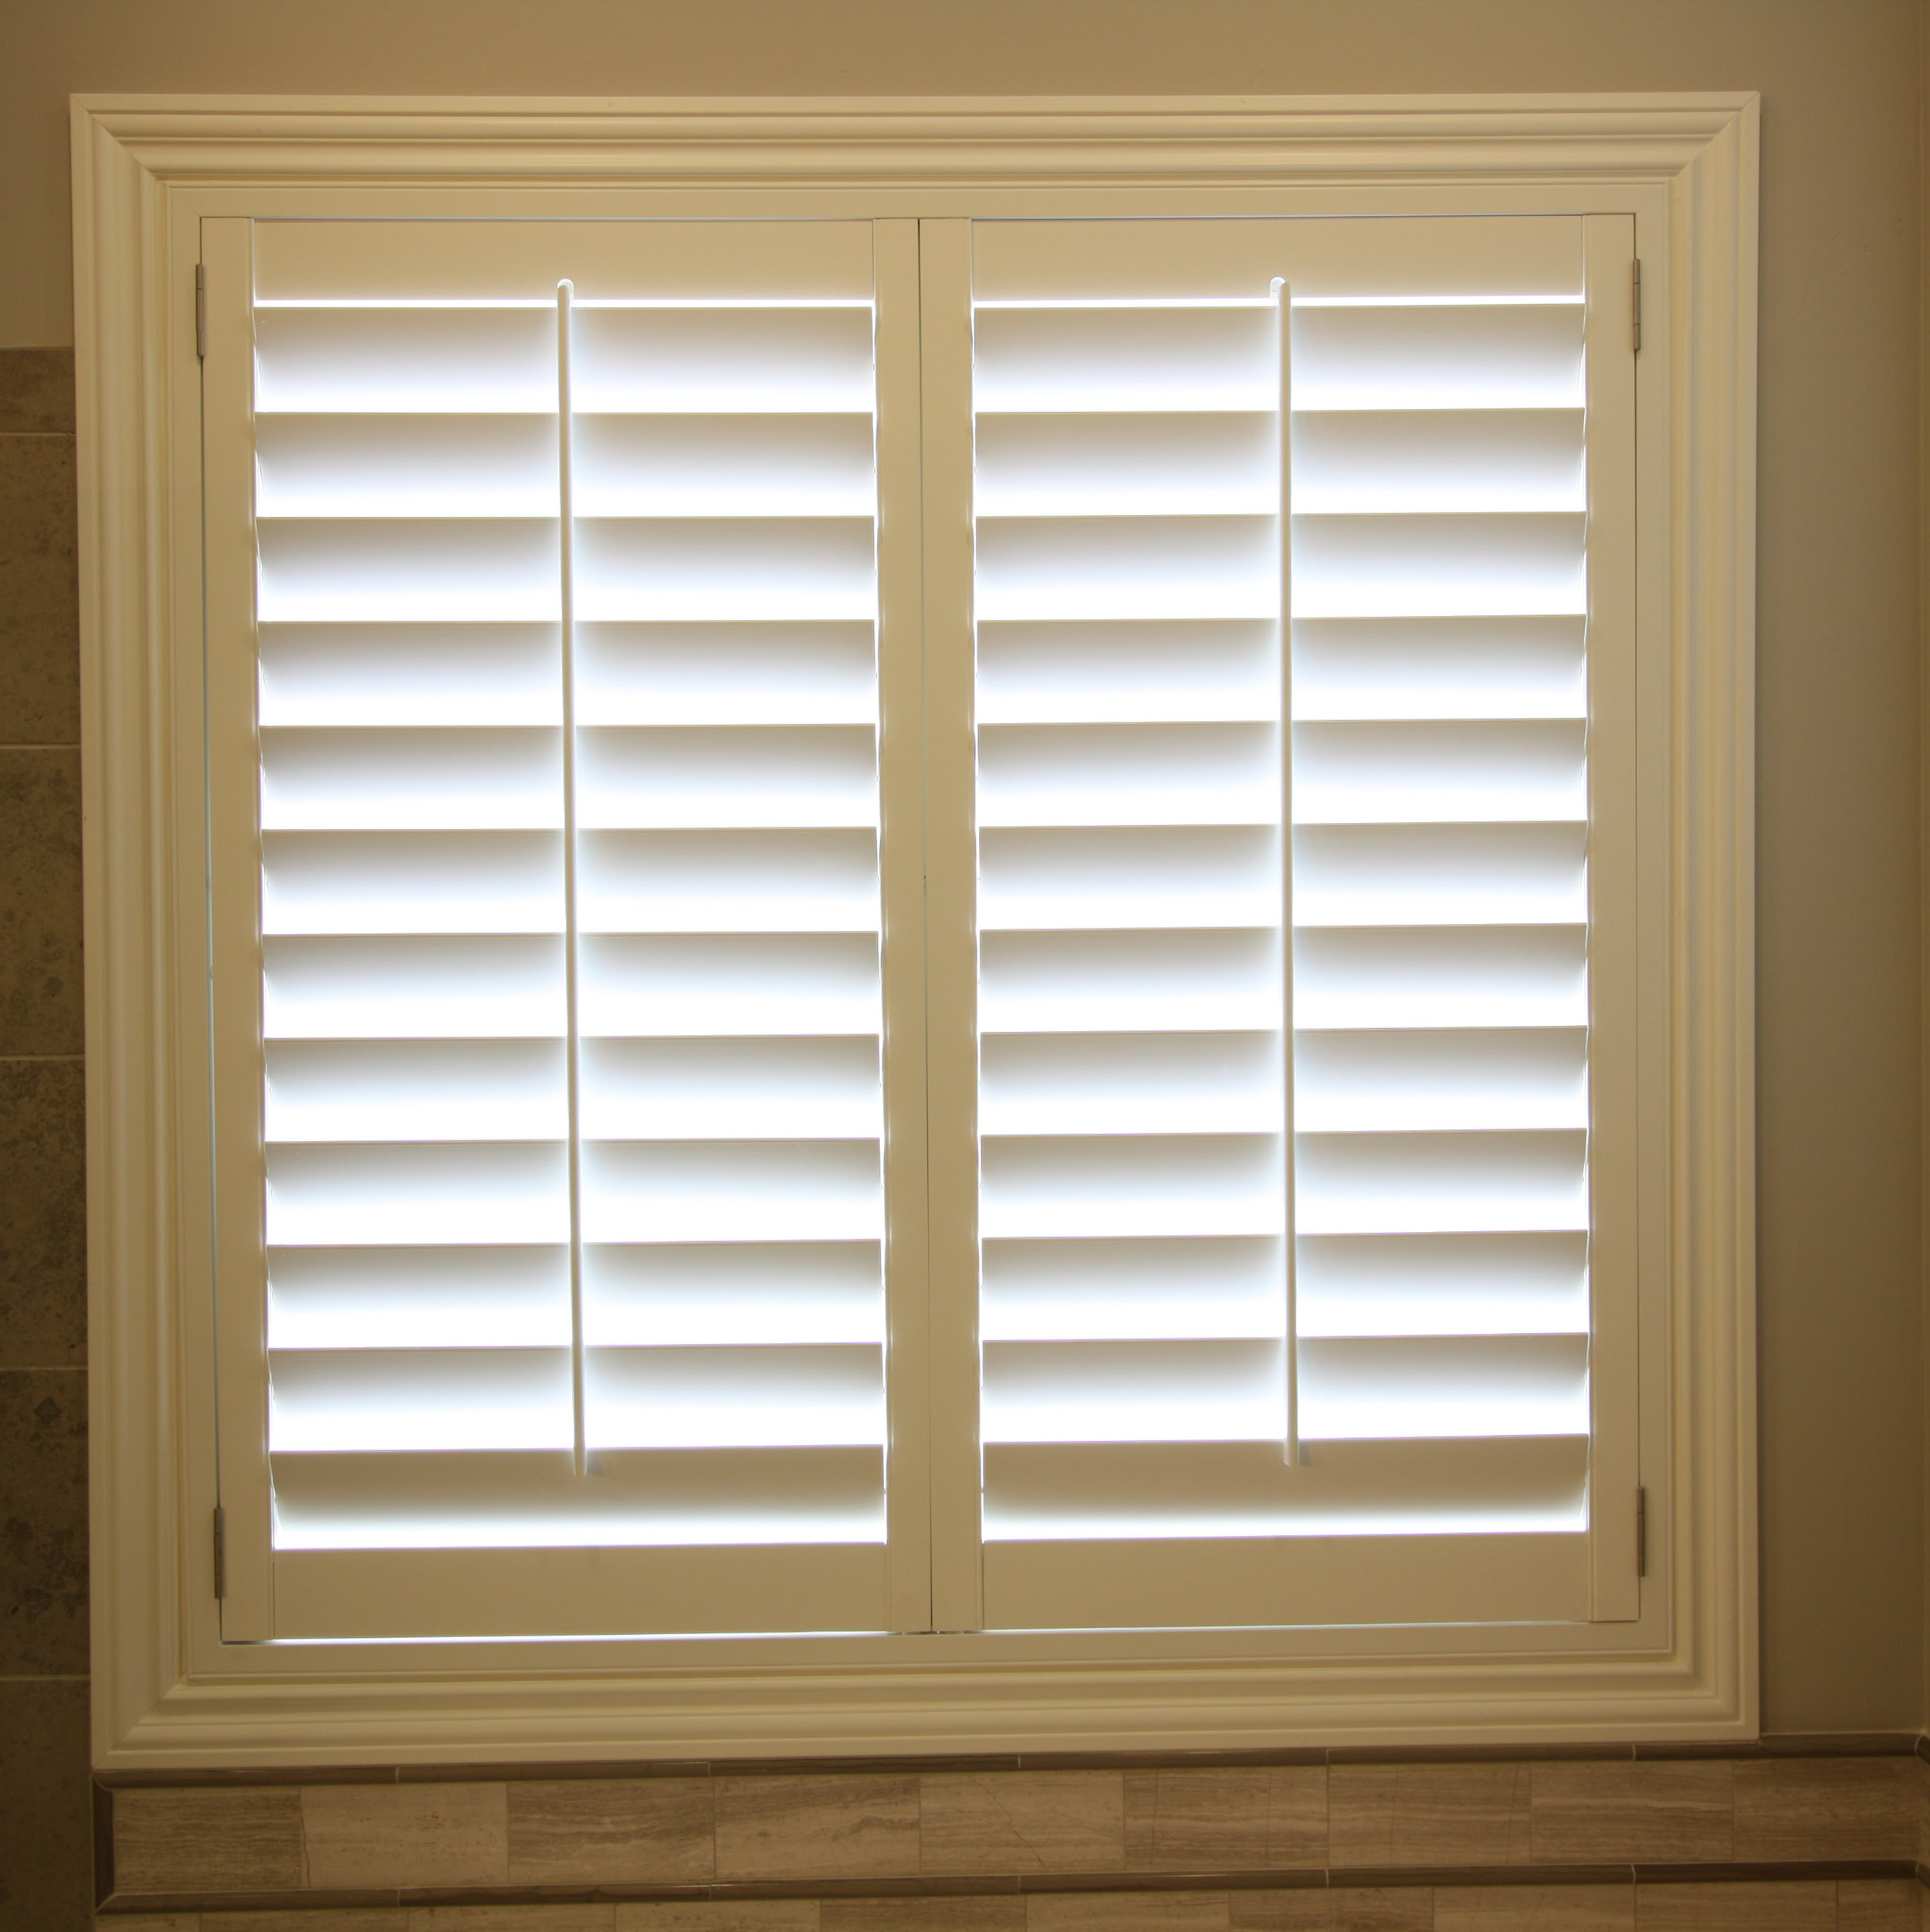 Wood shutter with small Z casing in previously cased window